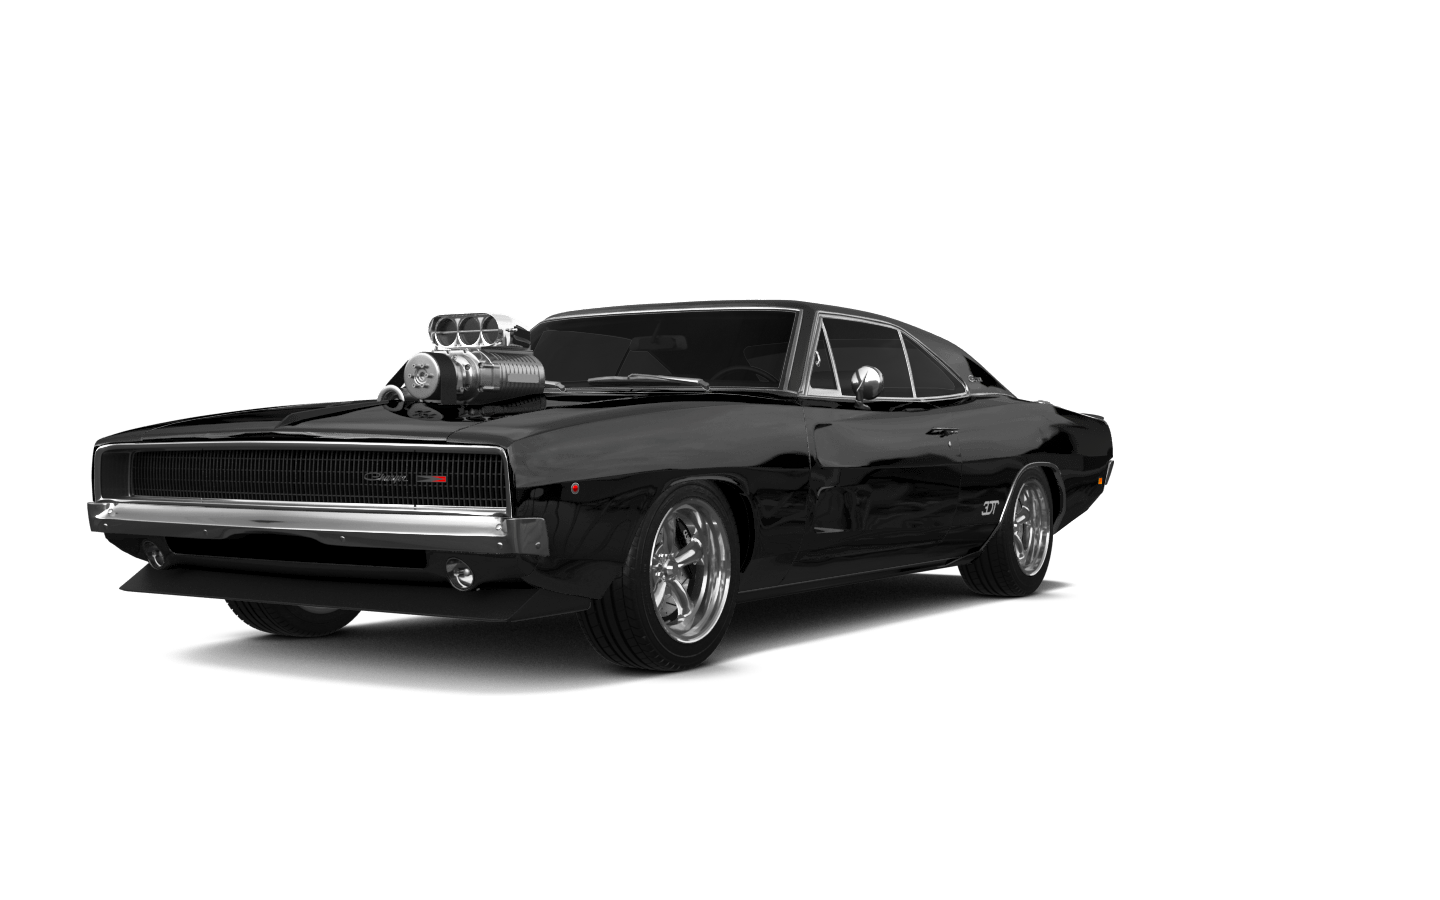 Dodge Charger 2 Door Coupe 1969 tuning